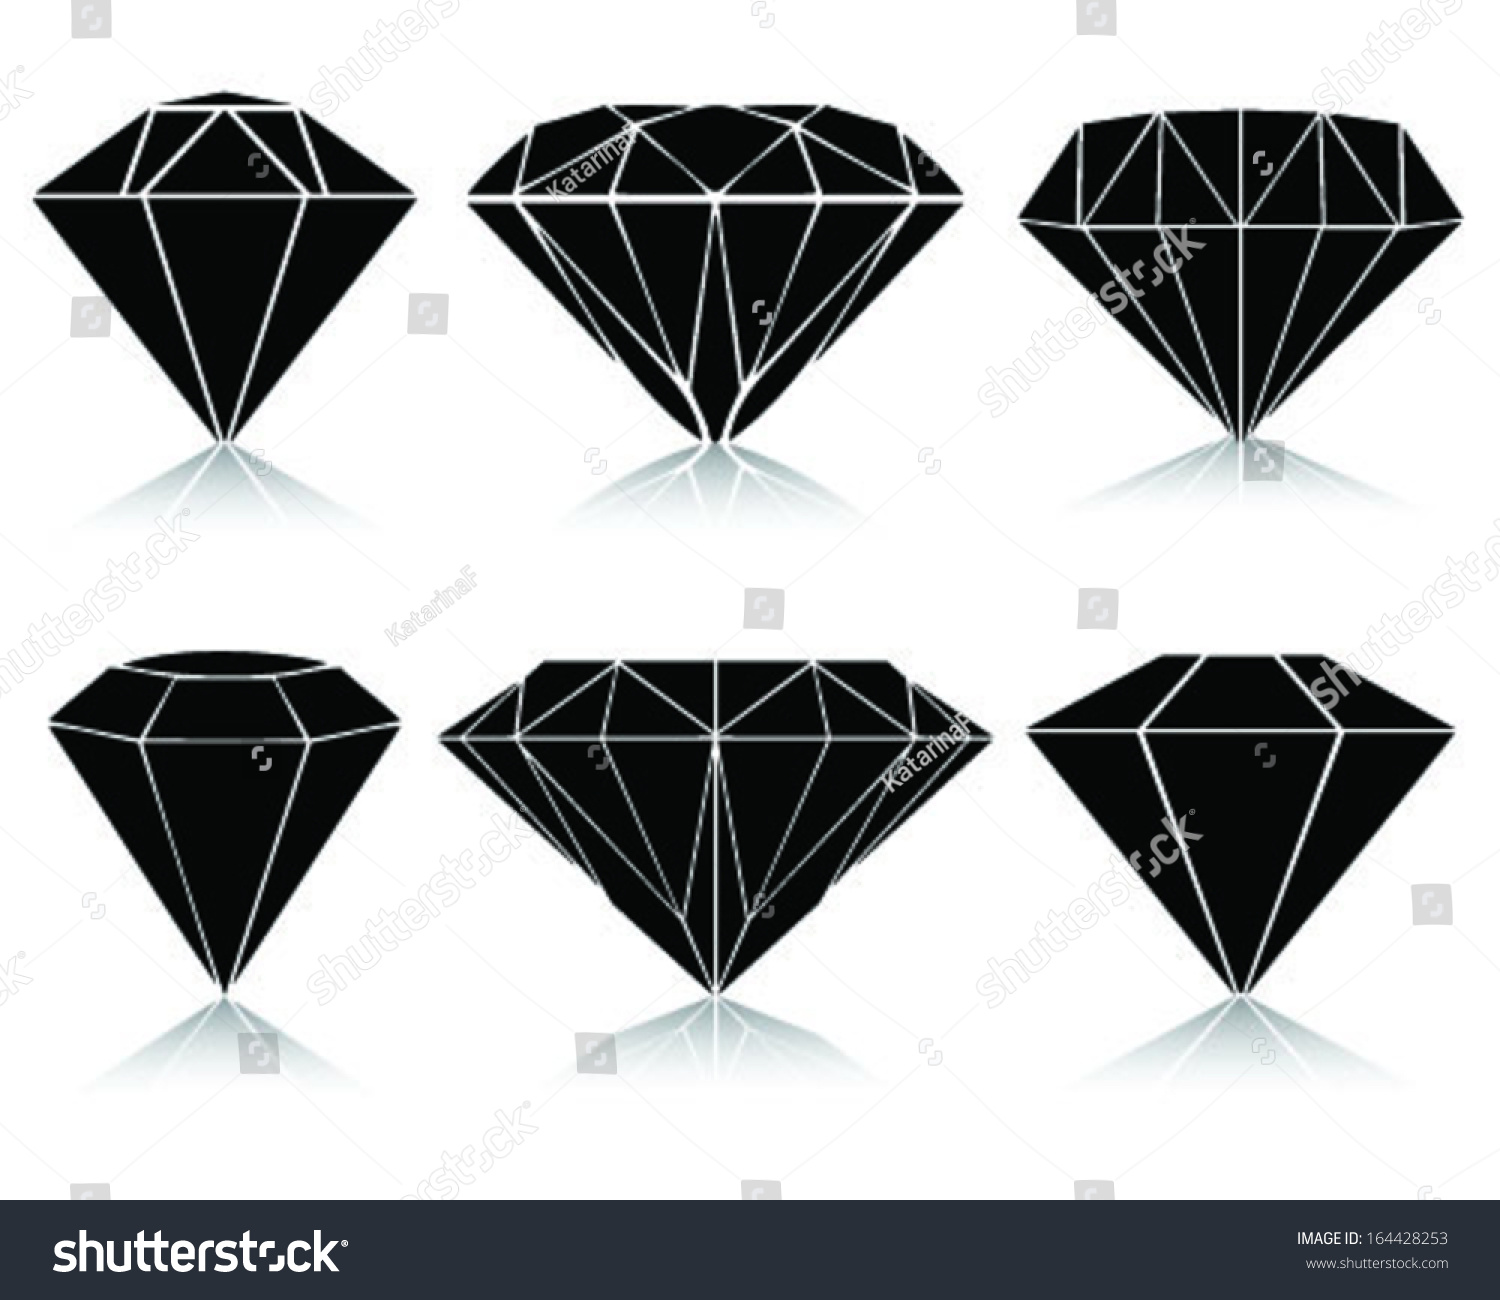 Diamond vector ai